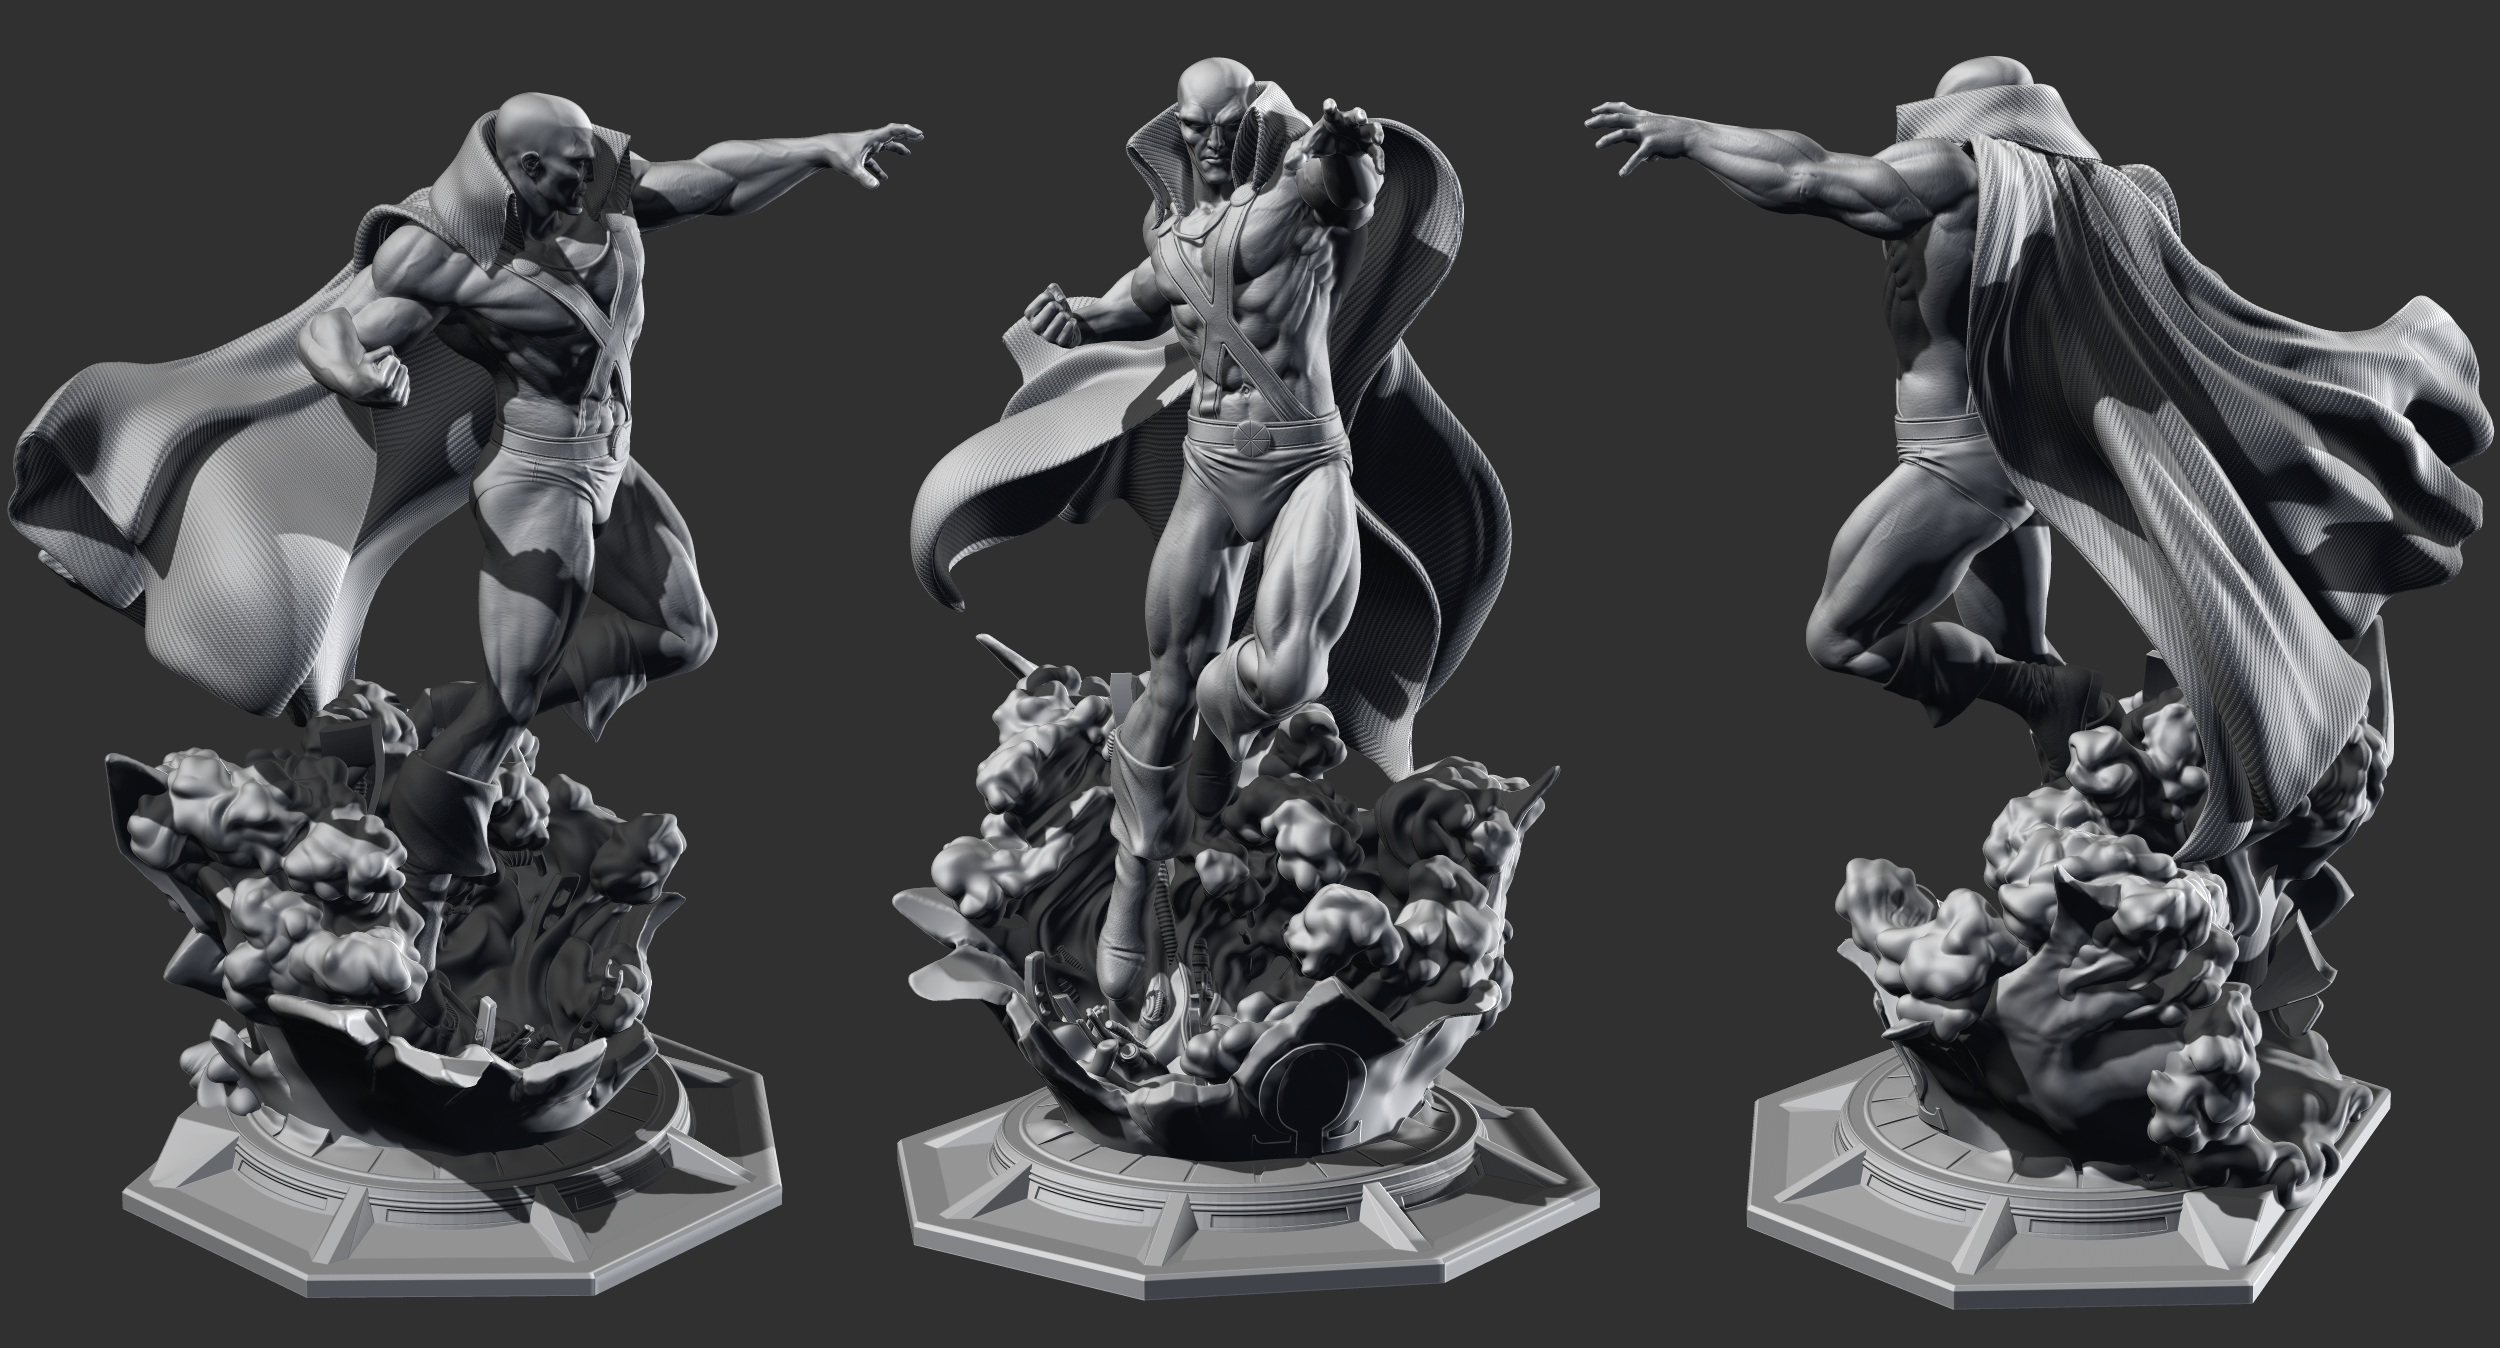 Escultura Digital de Martian Manhunter